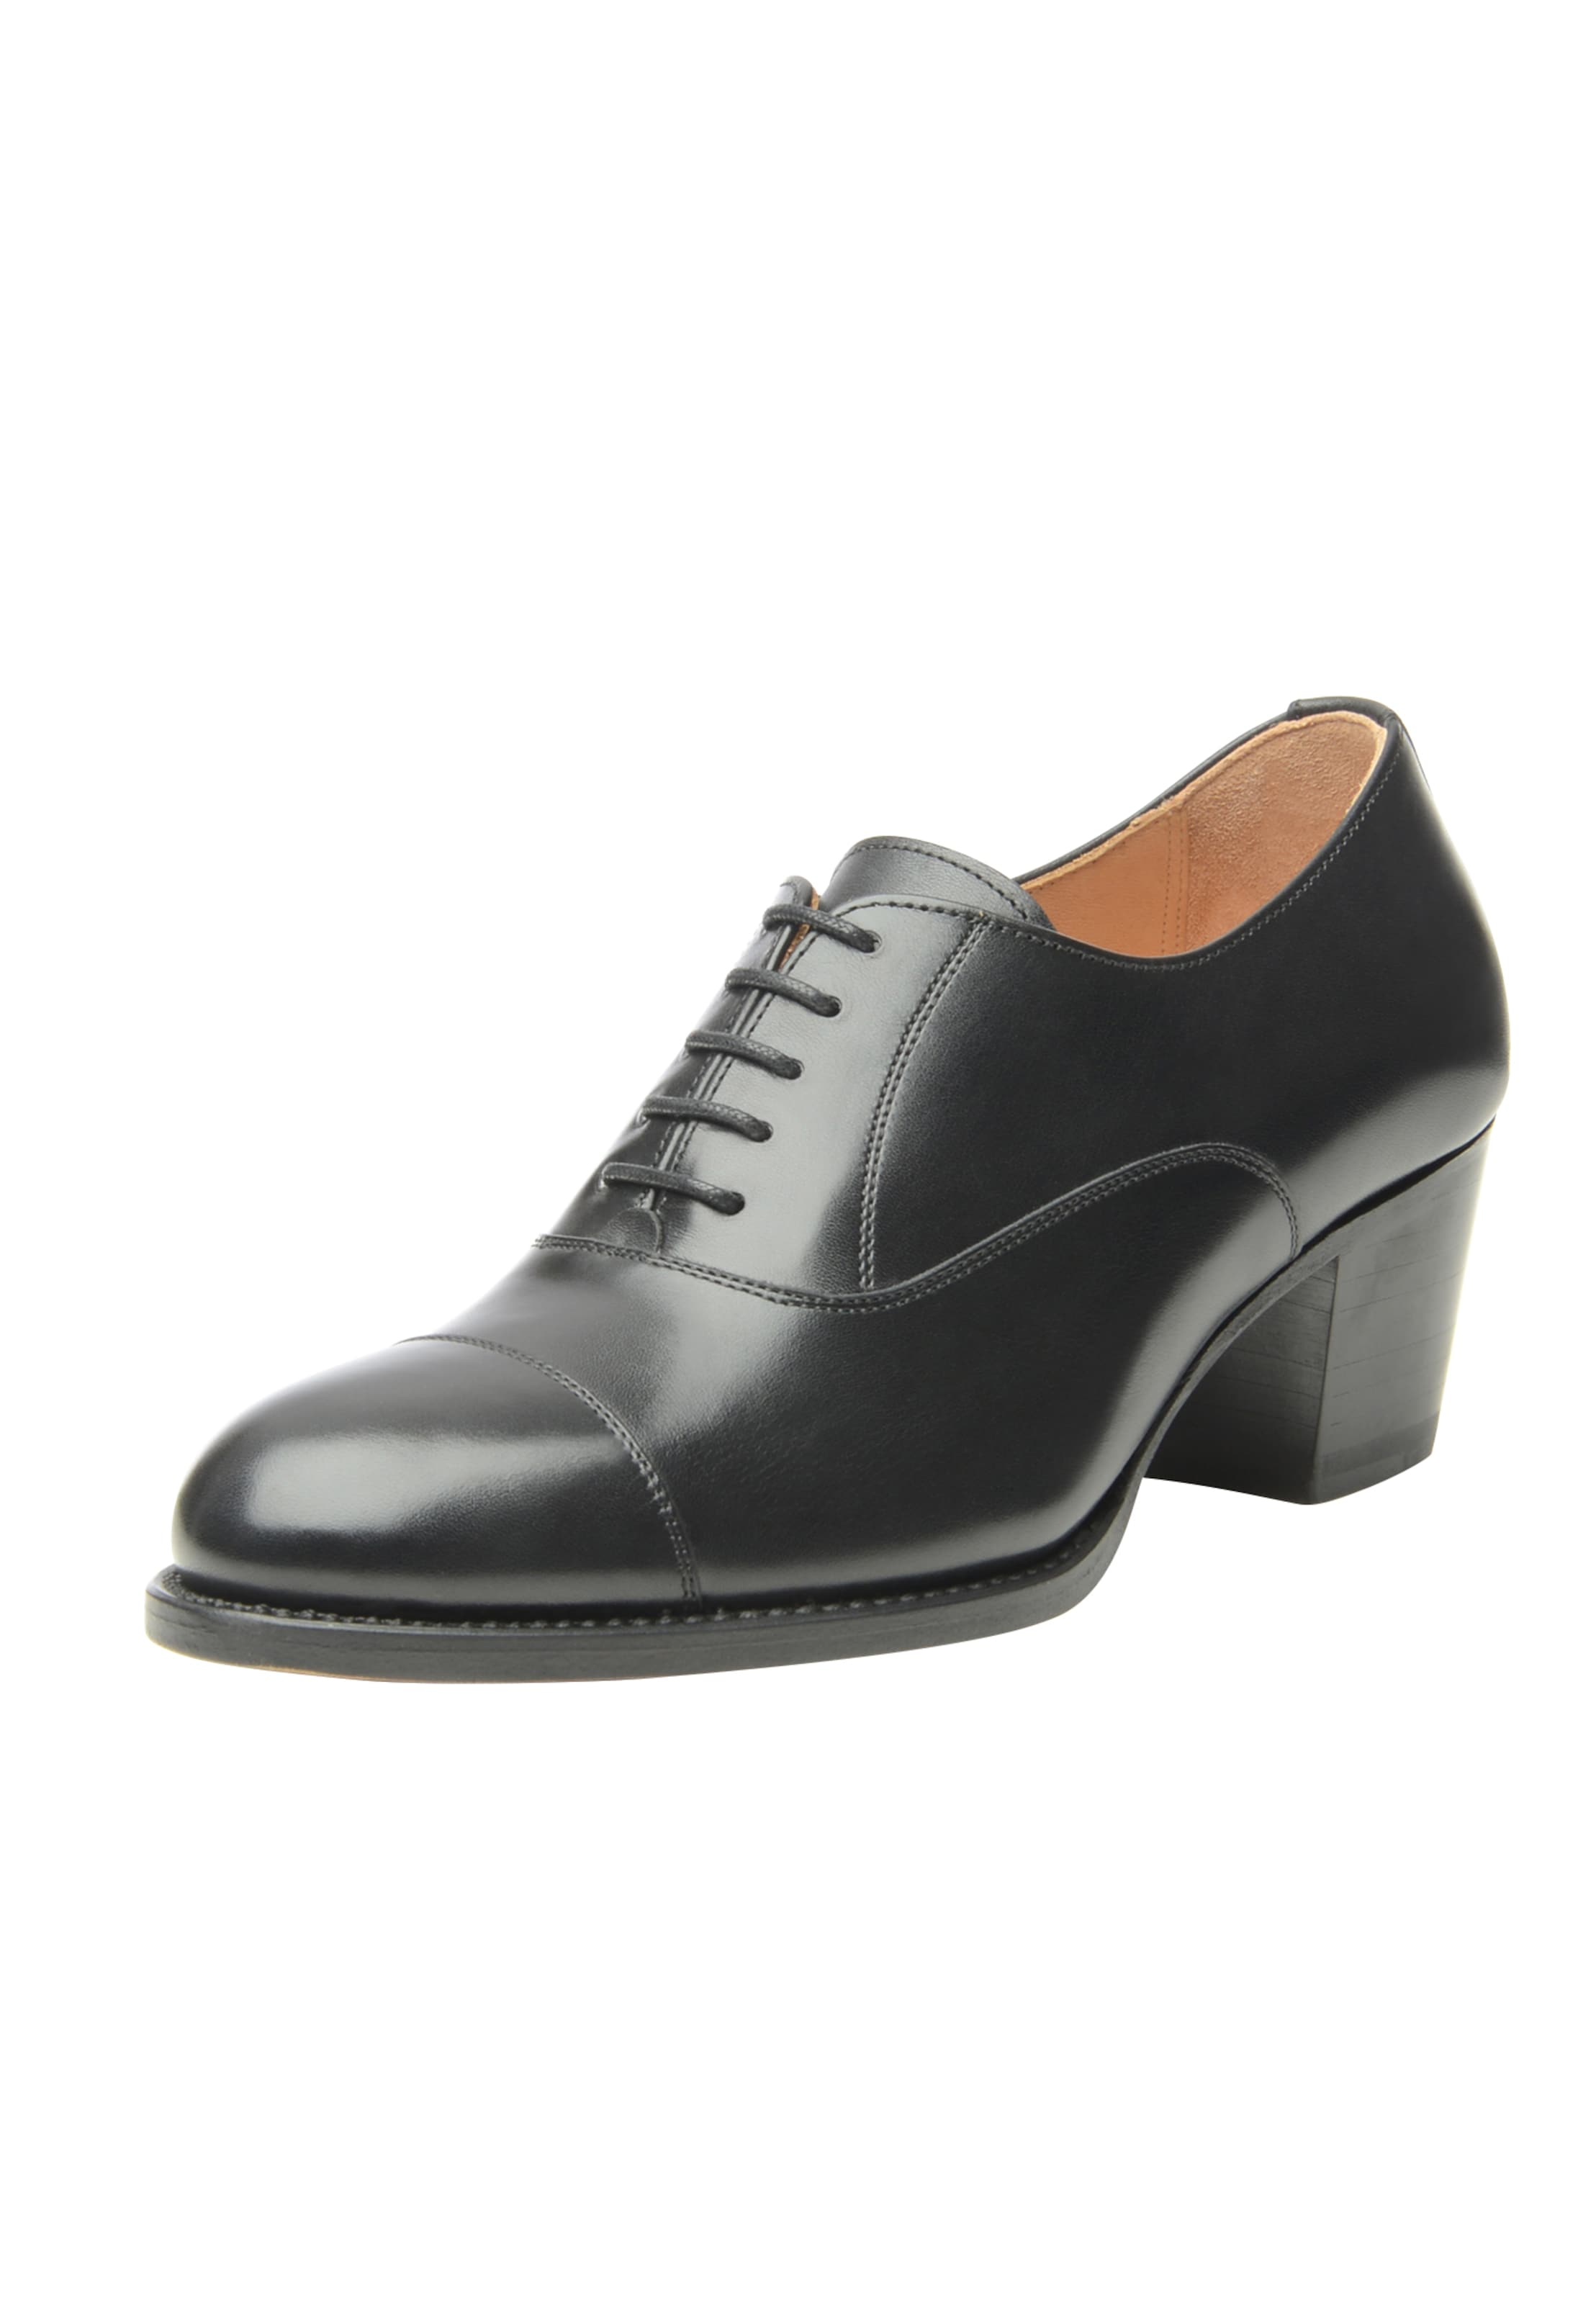 SHOEPASSION Pumps No. 124 Verschleißfeste billige Schuhe